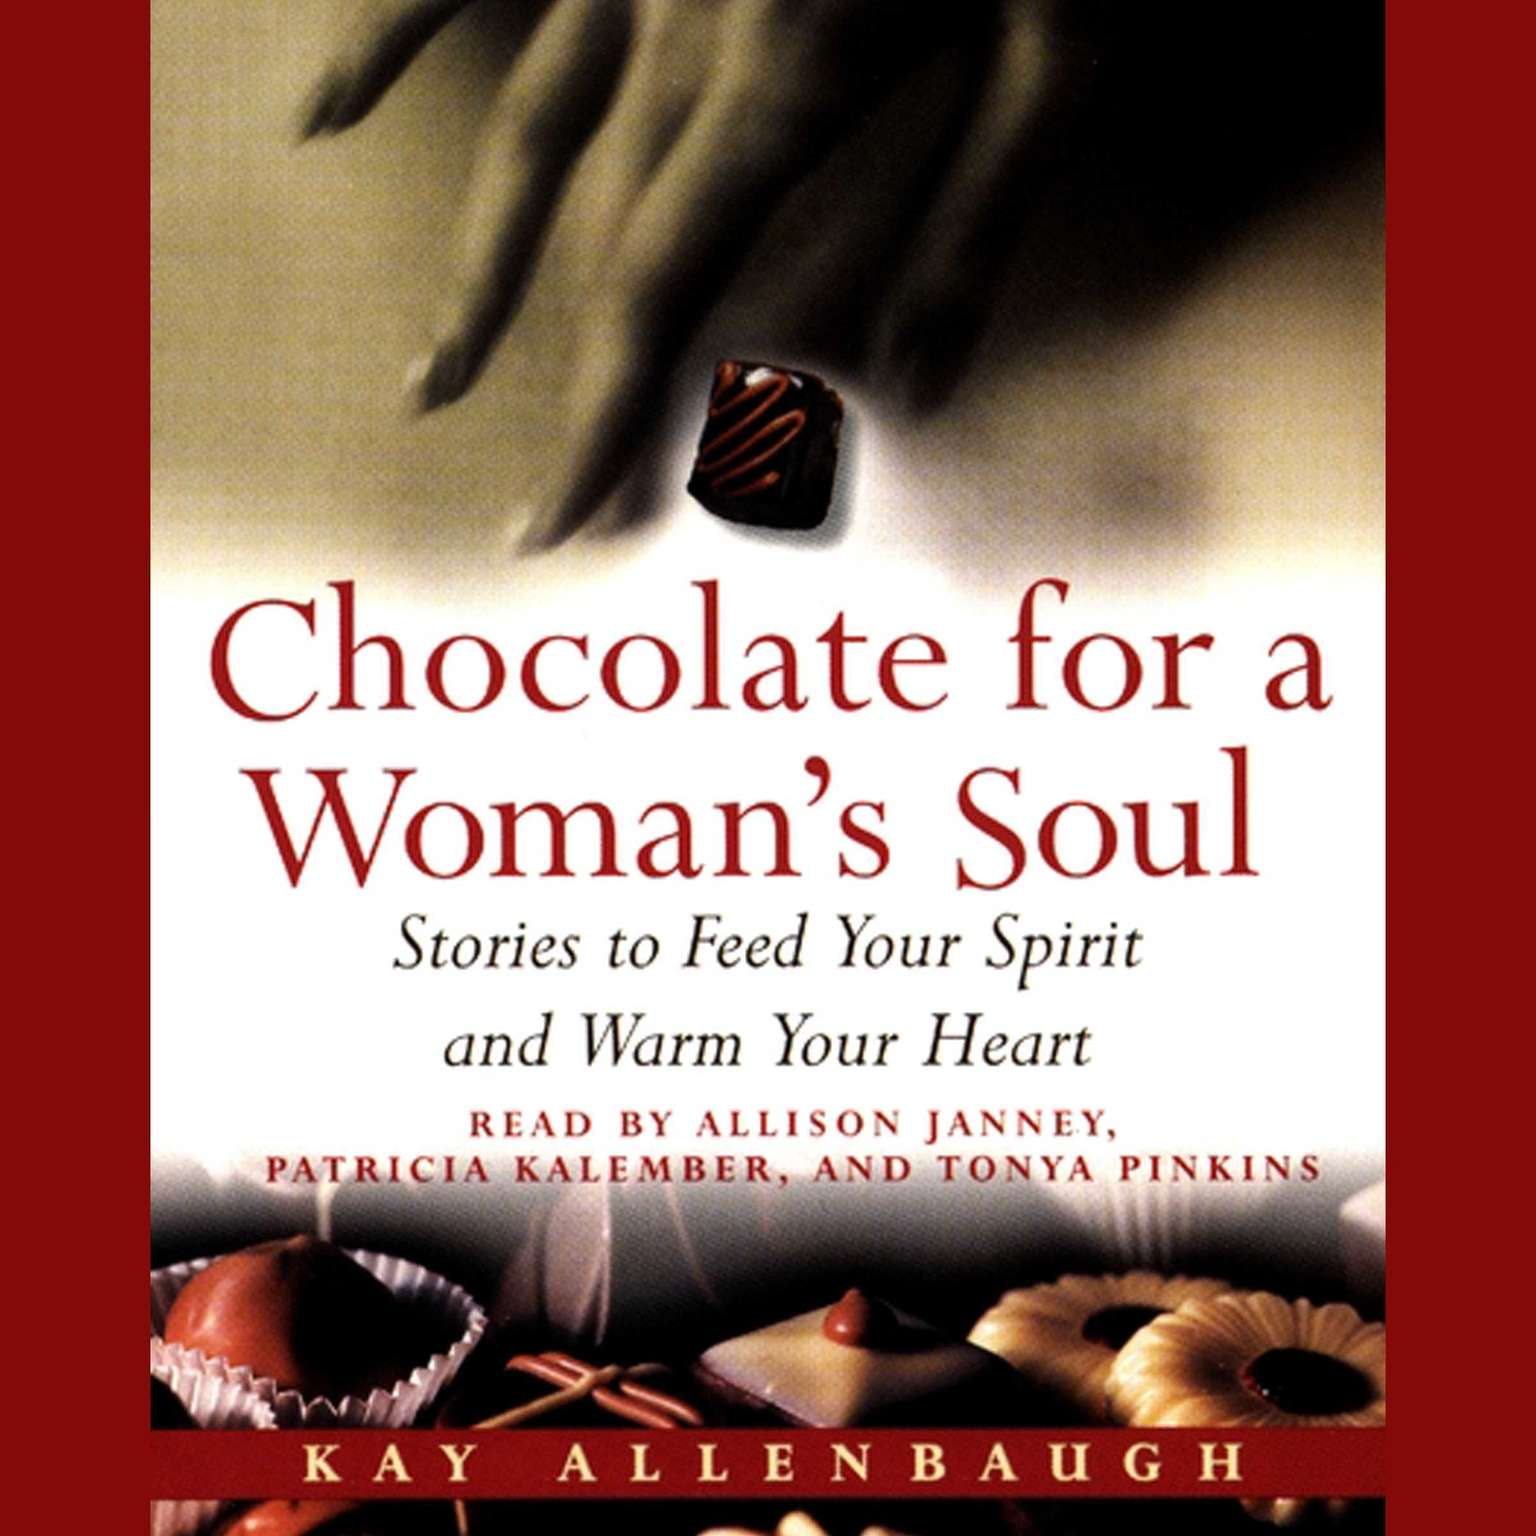 Printable Chocolate for a Woman's Soul: Stories to Feed Your Spirit and Warm Your Heart Audiobook Cover Art